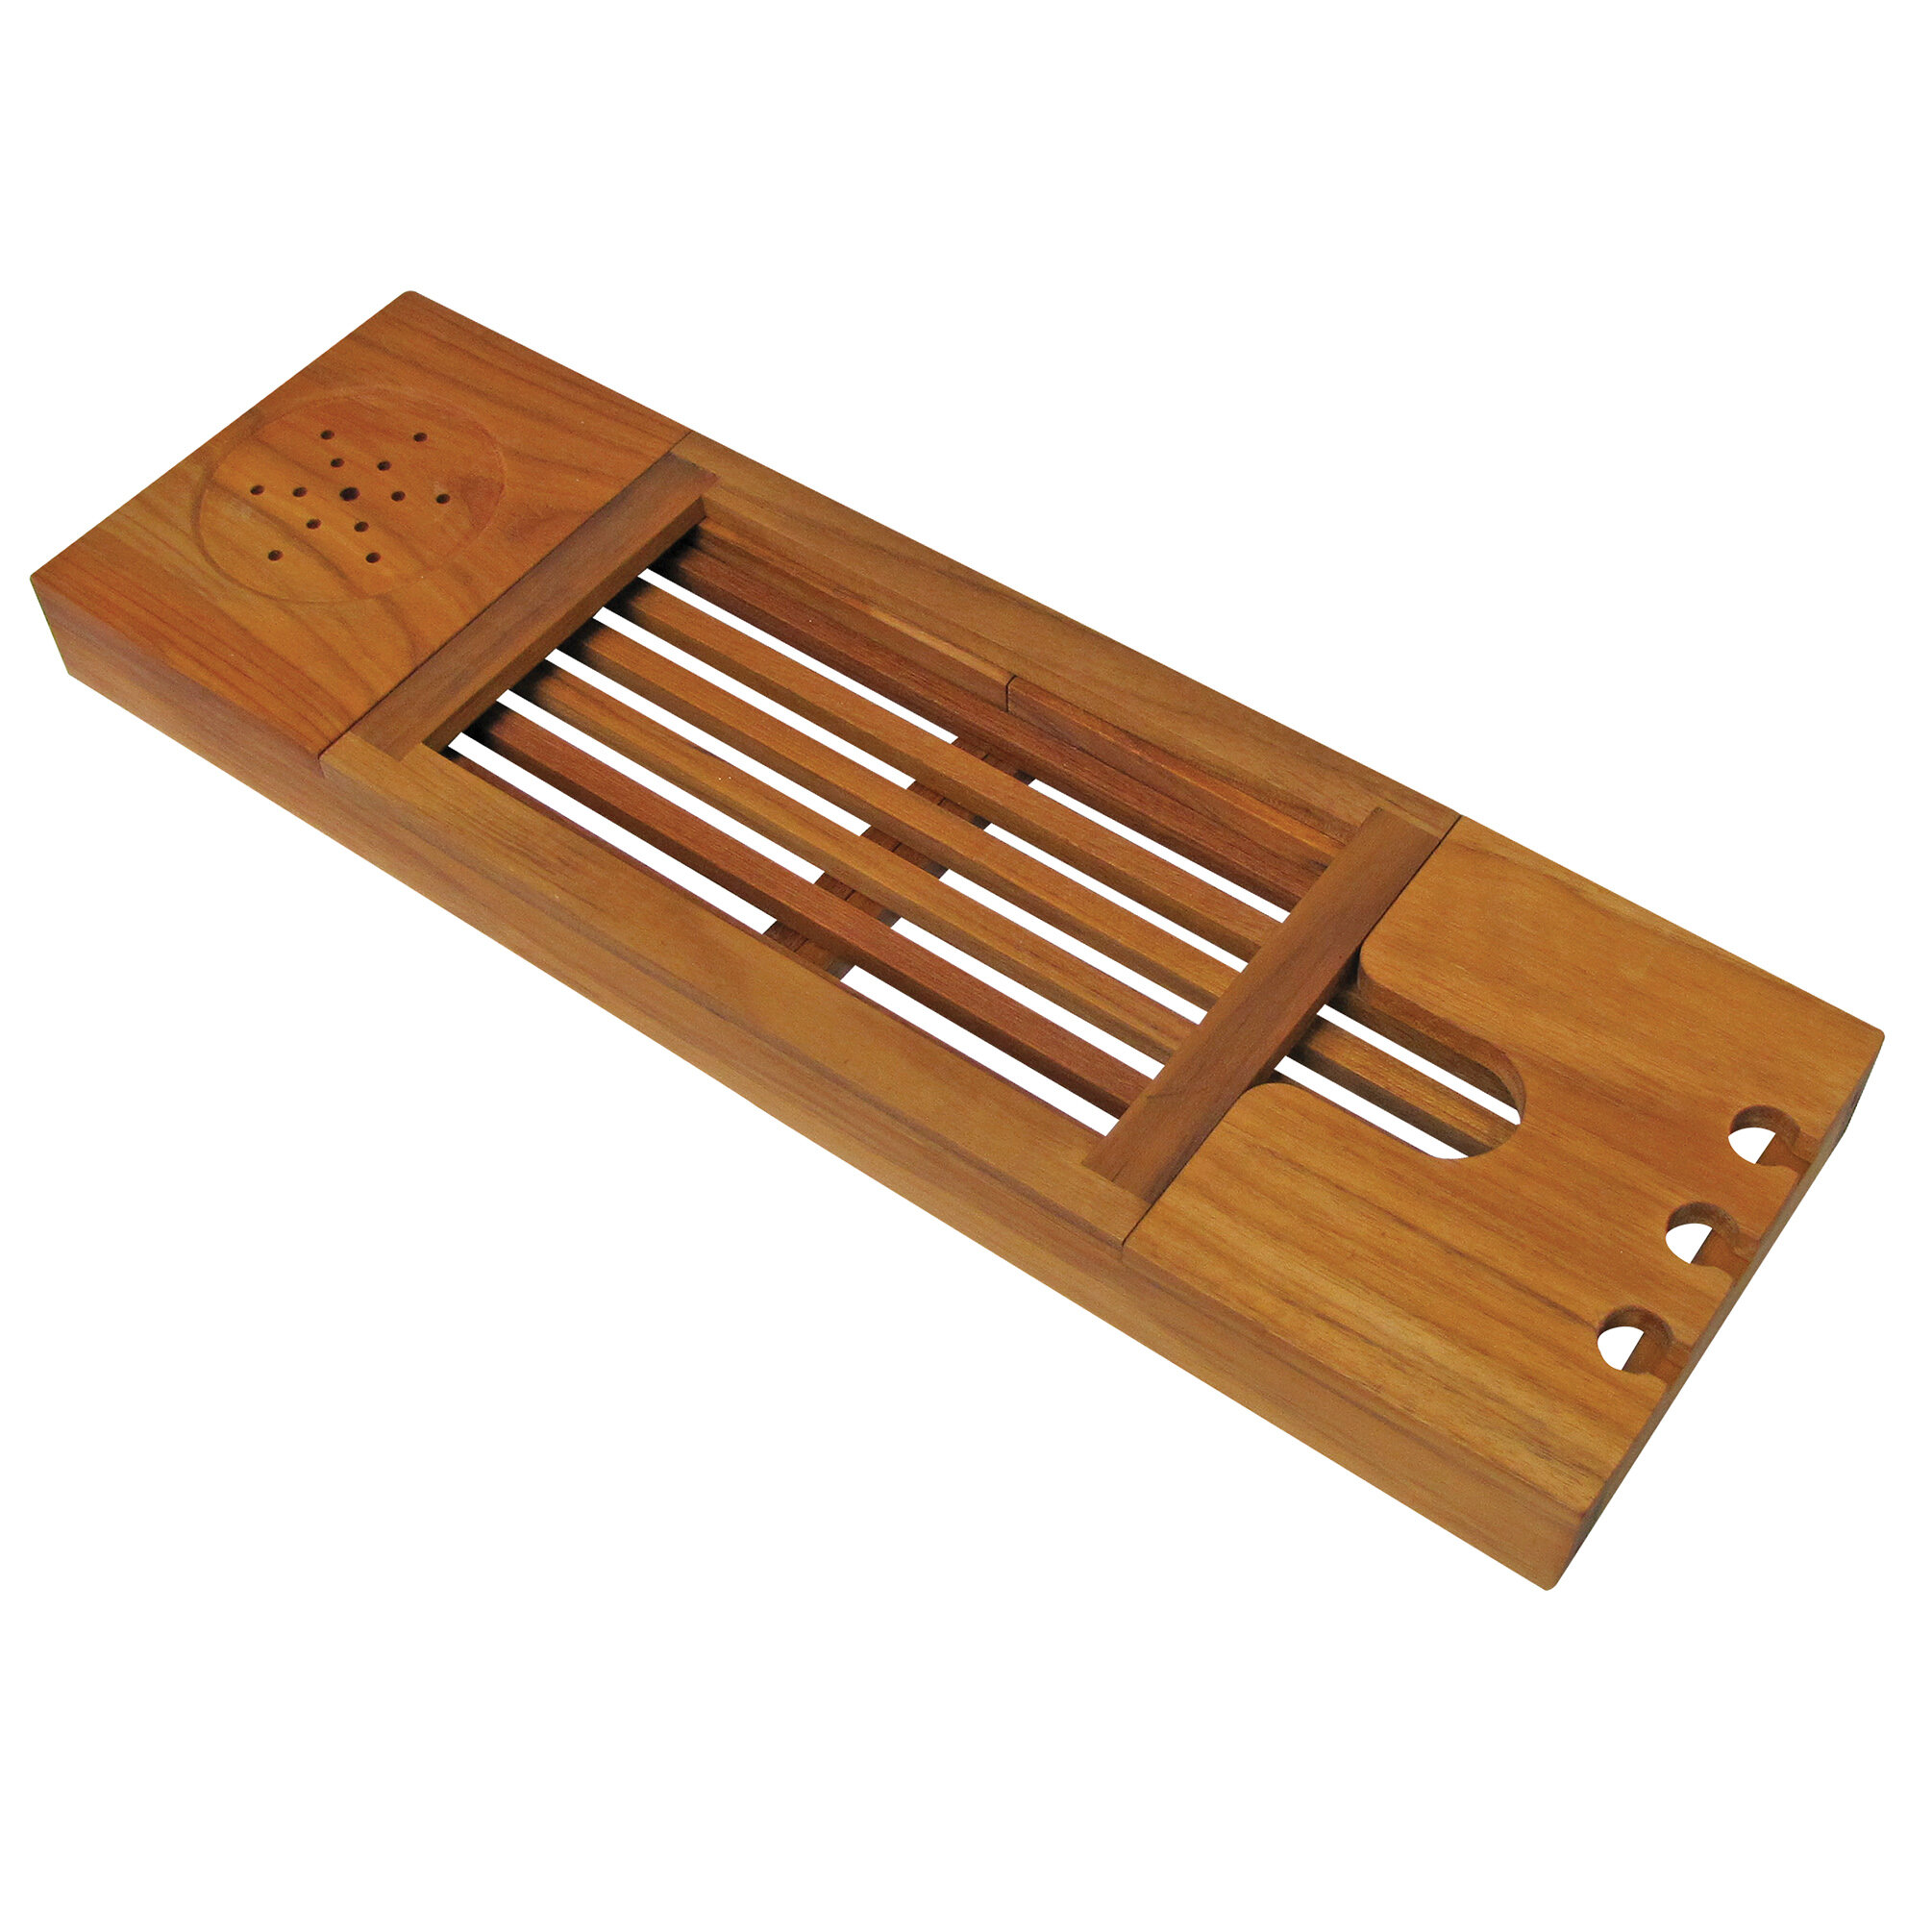 on chairs teak and shower shelves bath stools caddy benches